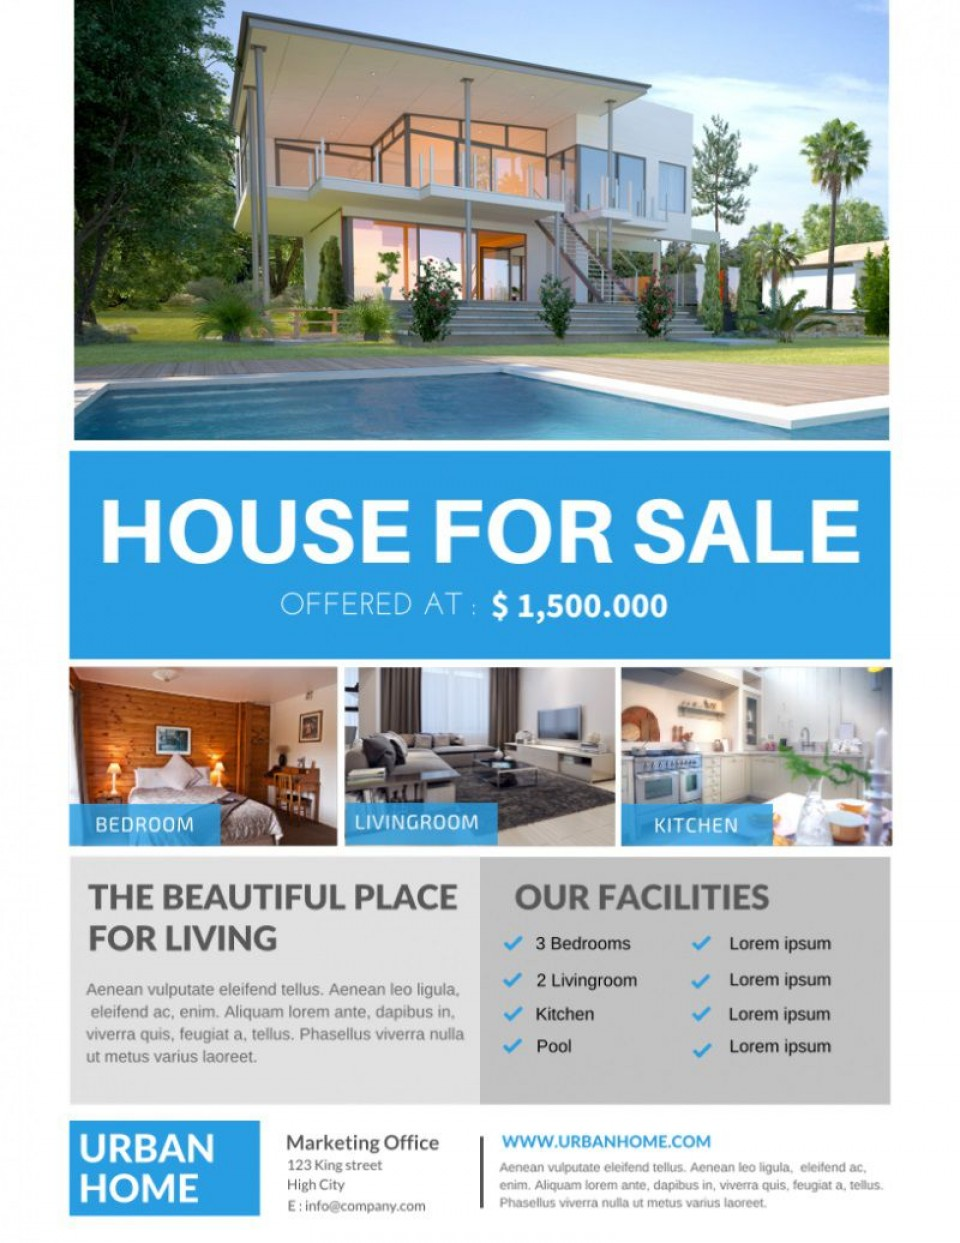 007 Breathtaking House For Sale Flyer Template Inspiration  Free Real Estate Example By Owner960